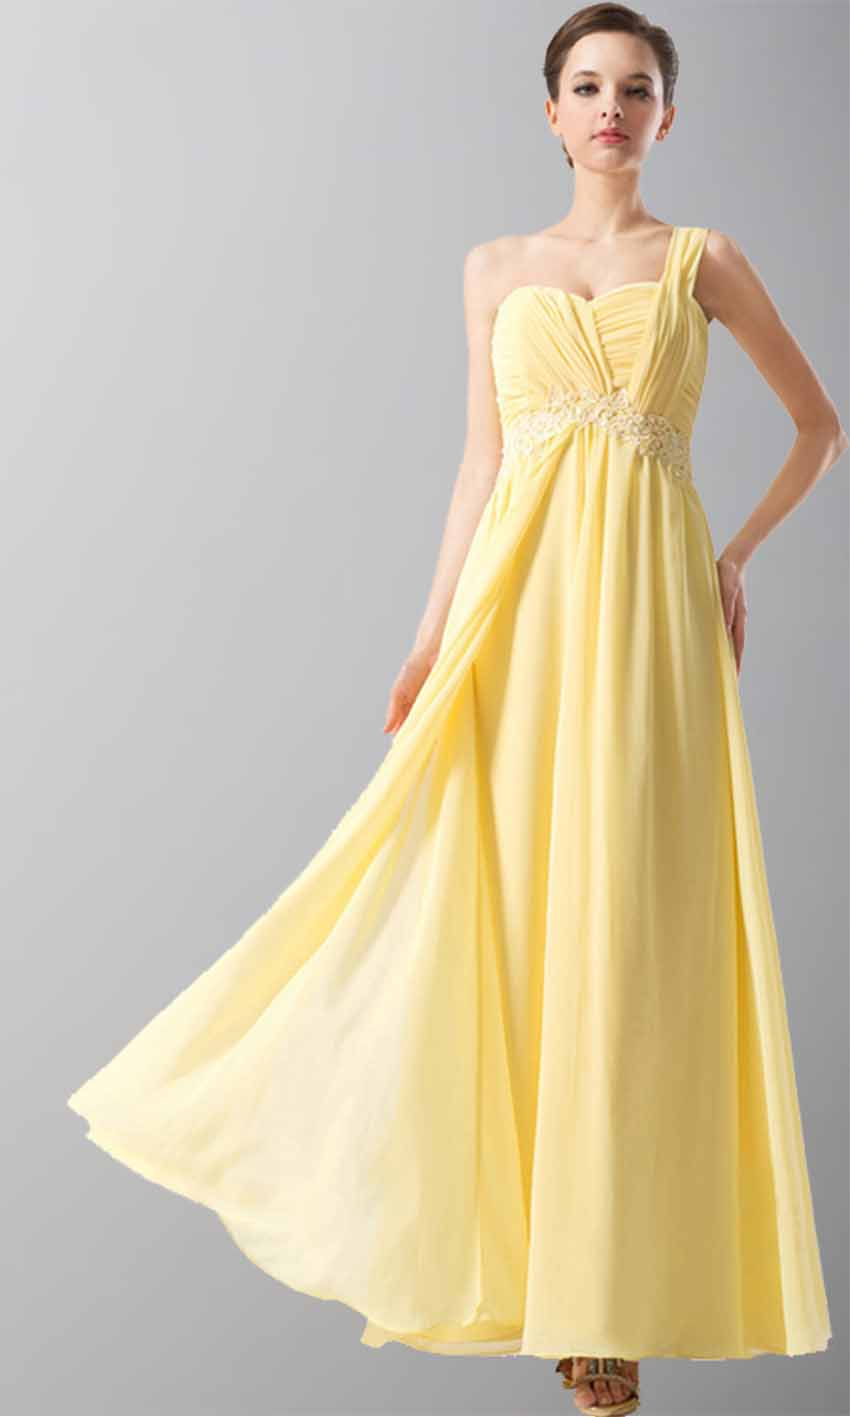 Sweet Heart One Shoulder Yellow Long Chiffon Prom Dresses KSP146 [KSP146] - £93.00 : Cheap Prom Dresses Uk, Bridesmaid Dresses, 2014 Prom & Evening Dresses, Look for cheap elegant prom dresses 2014, cocktail gowns, or dresses for special occasions? kissprom.co.uk offers various bridesmaid dresses, evening dress, free shipping to UK etc.